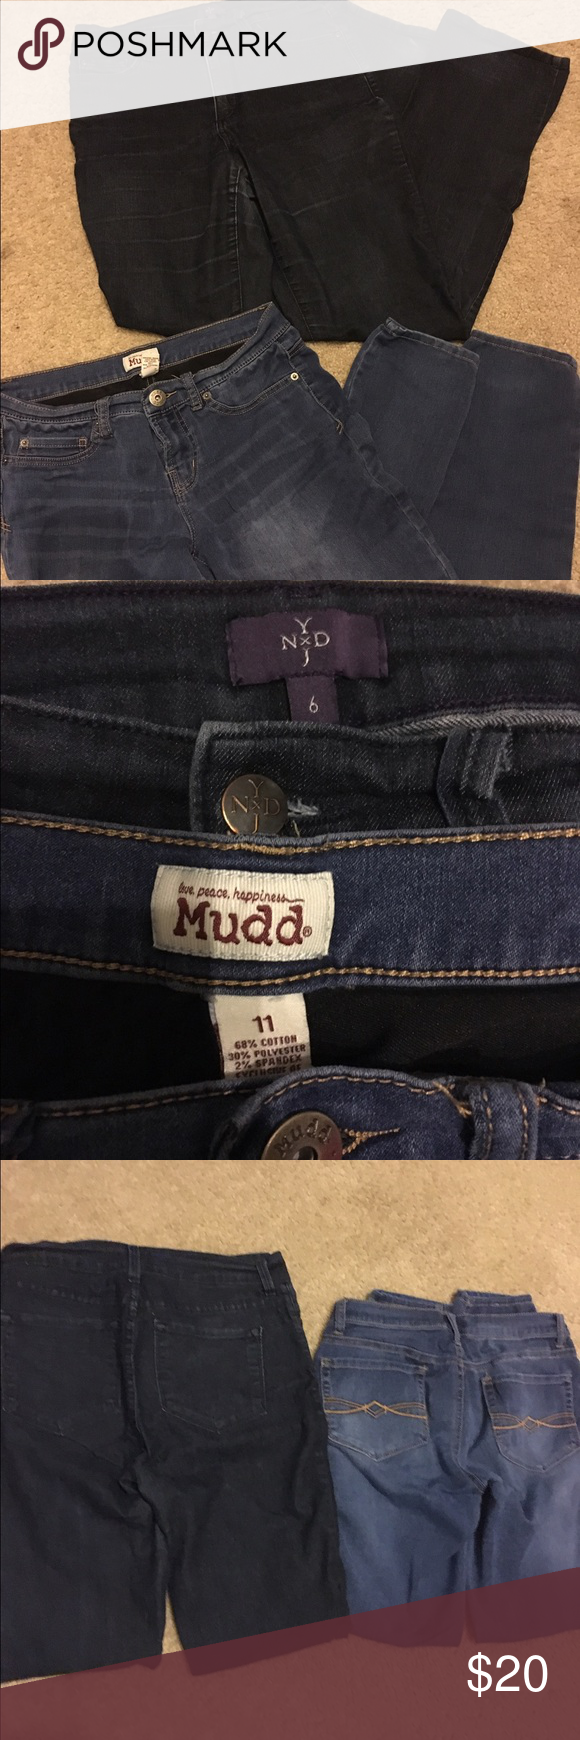 2 for 1 jeans! Darker jeans are slightly more worn than the lighter pair, but both are still in good condition and have a lot of life left in them. Please let me know if you have any questions. I usually wear between sizes 8-10. Pants Boot Cut & Flare